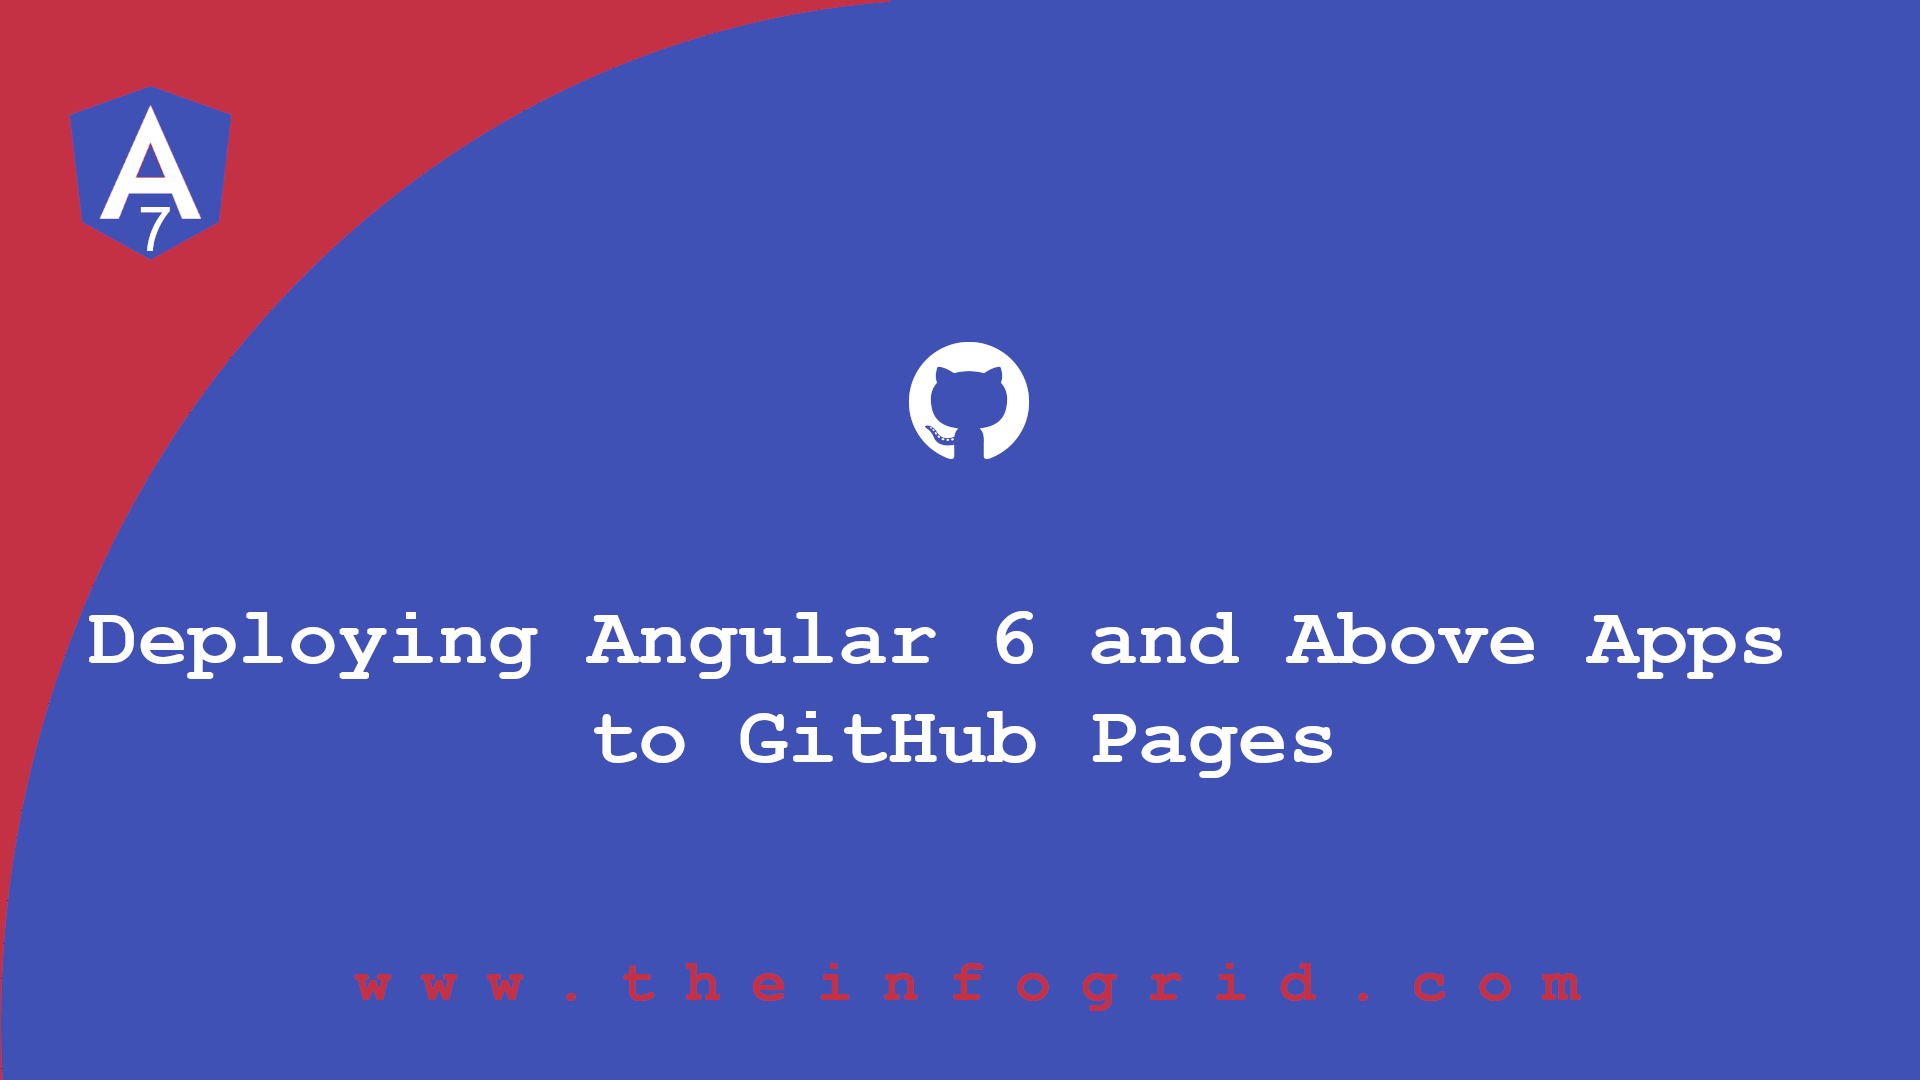 Deploying Angular 6 and Above Apps to GitHub Pages